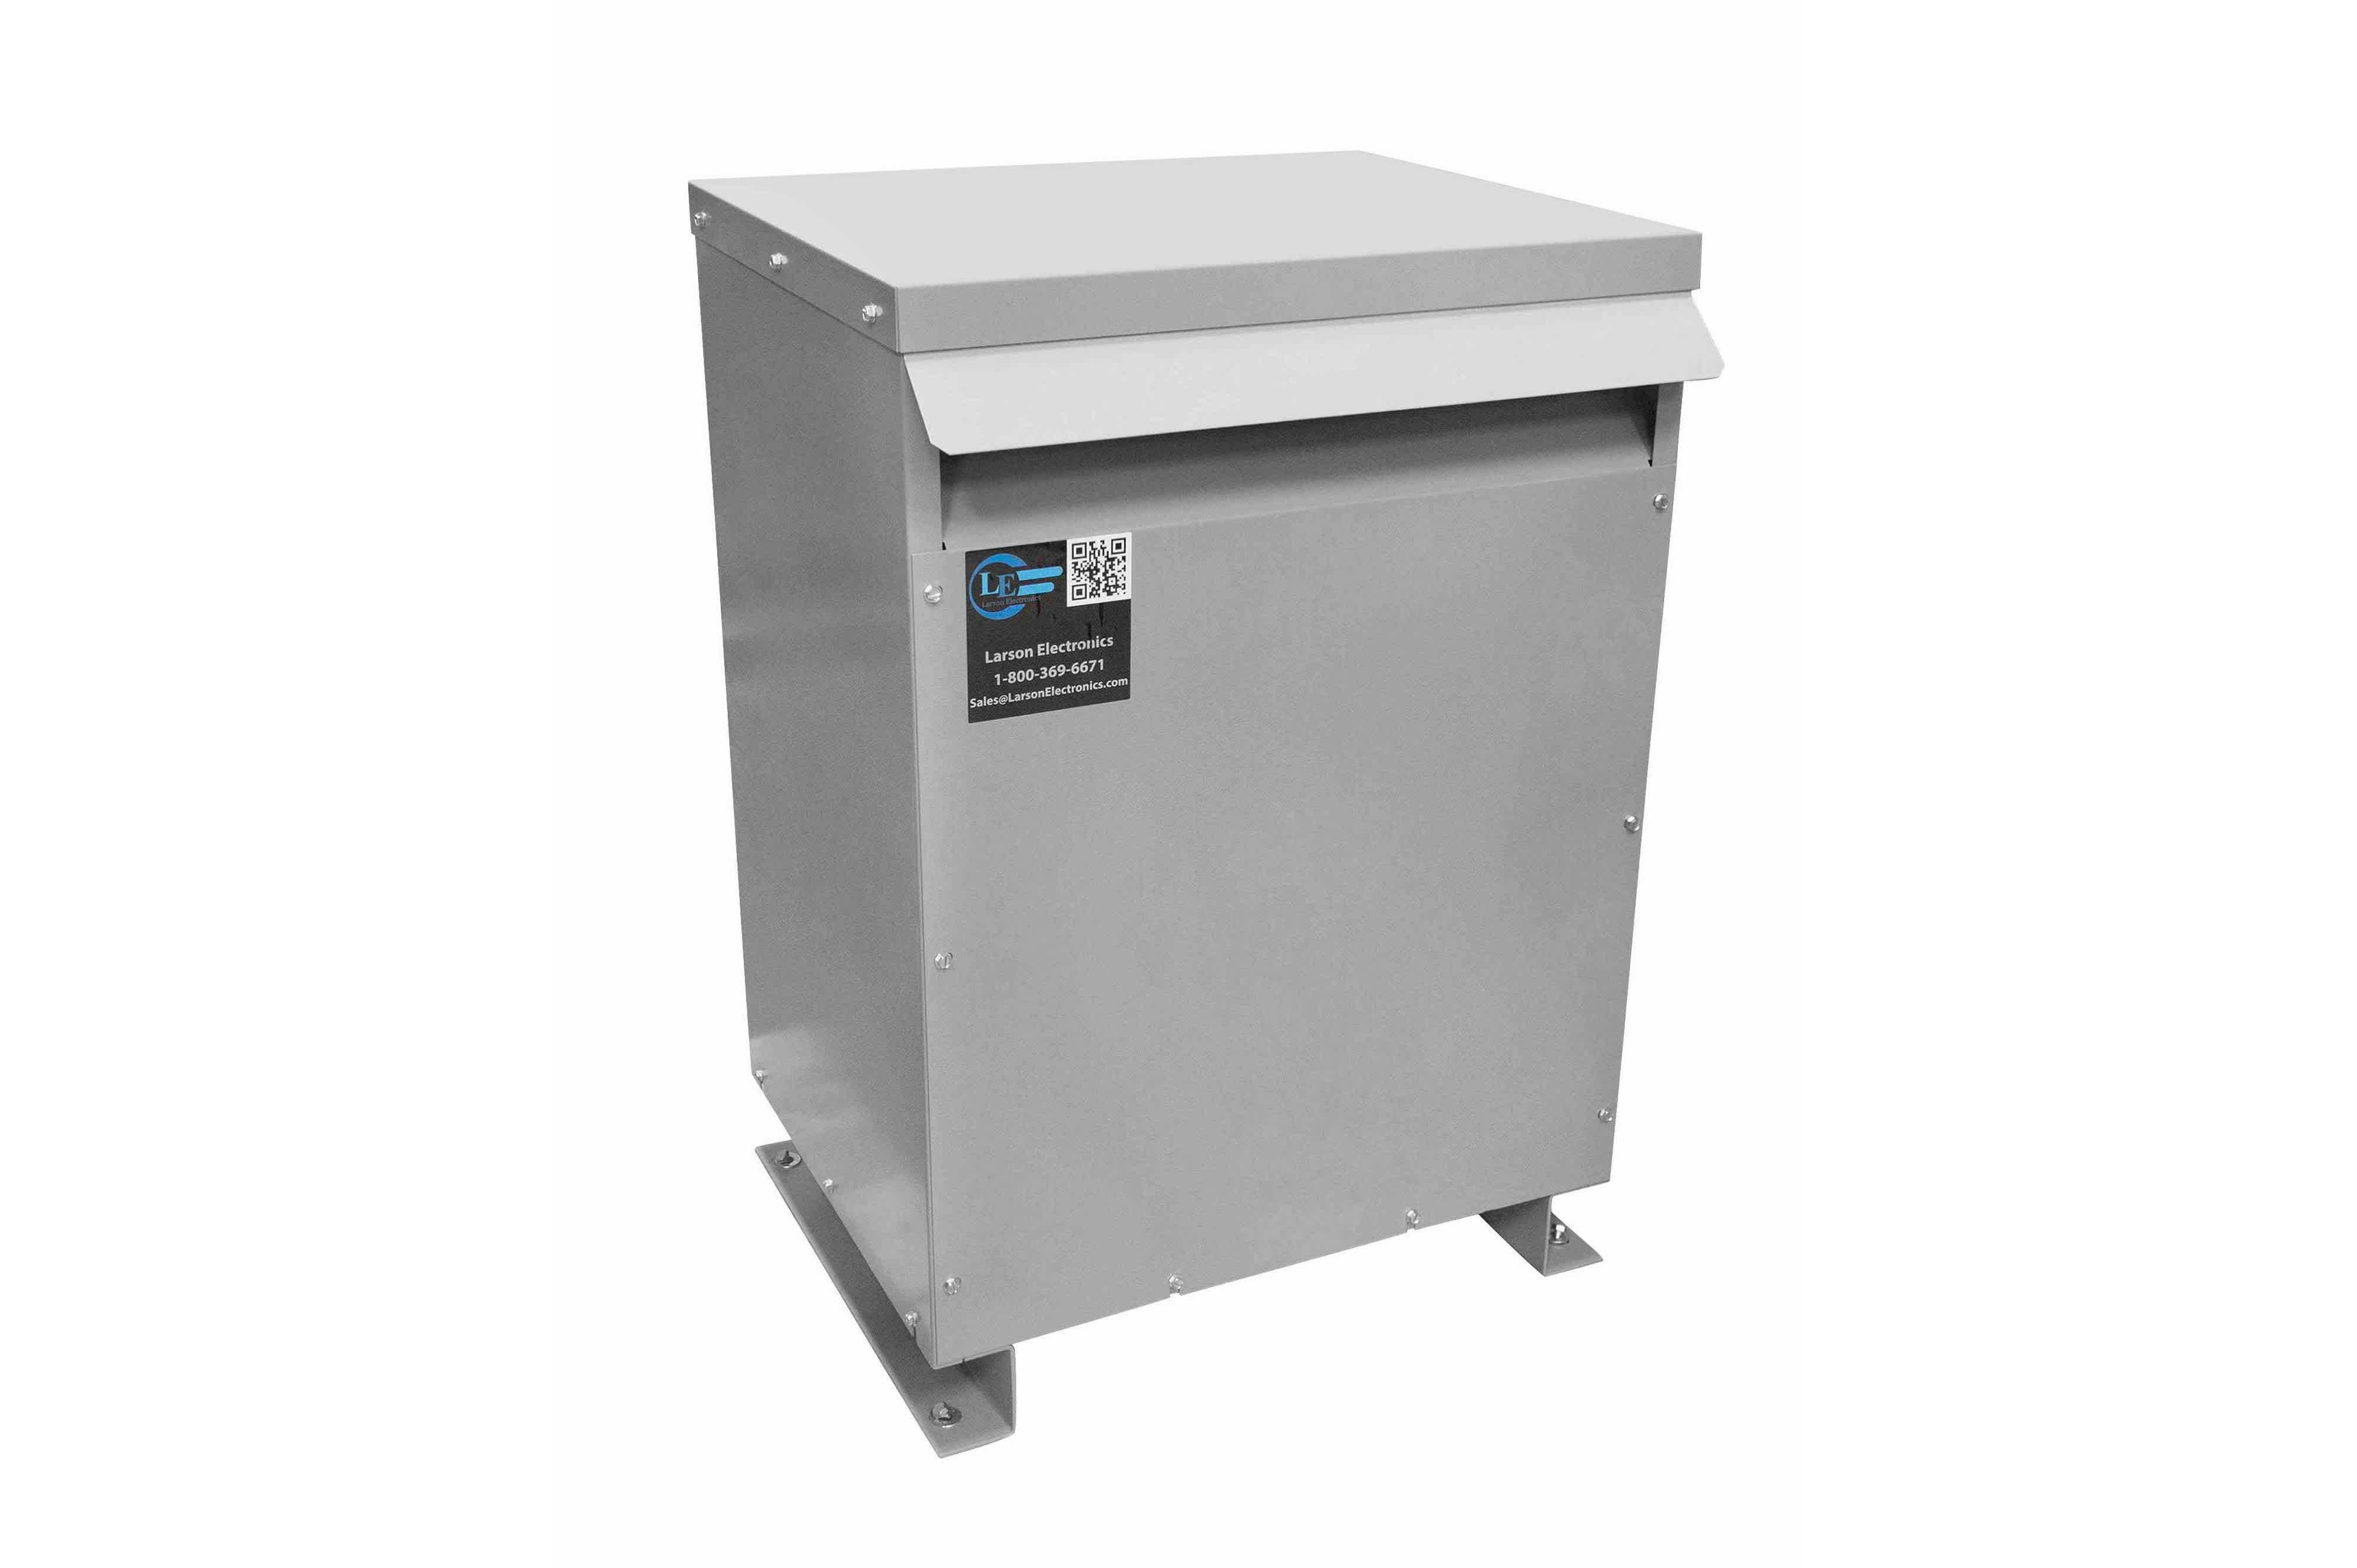 25 kVA 3PH Isolation Transformer, 240V Wye Primary, 415V Delta Secondary, N3R, Ventilated, 60 Hz